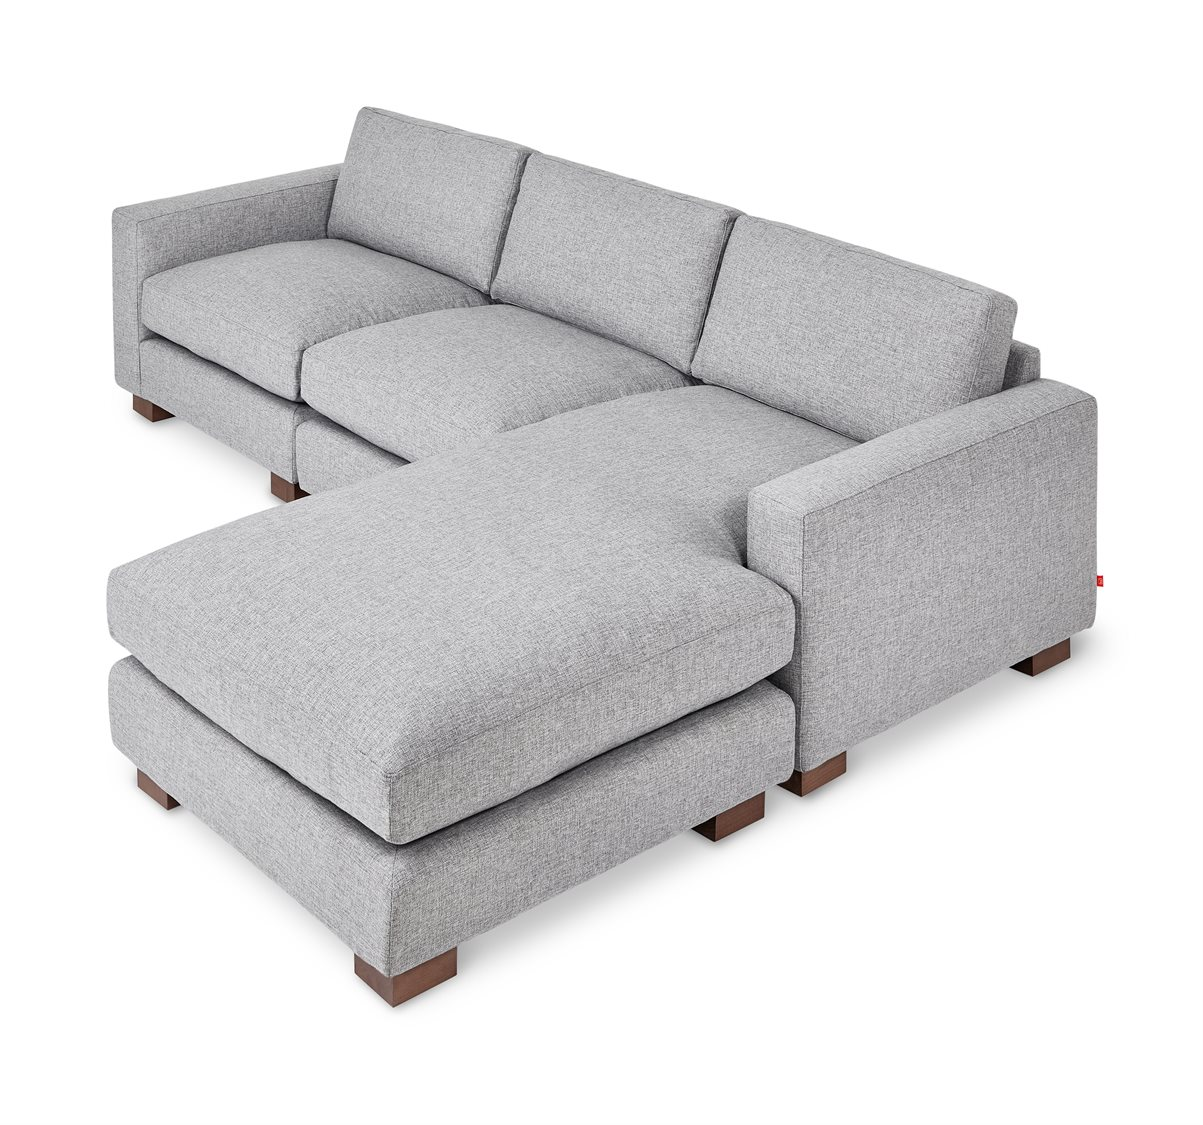 gus modern parkdale parliament stone sectional sofa